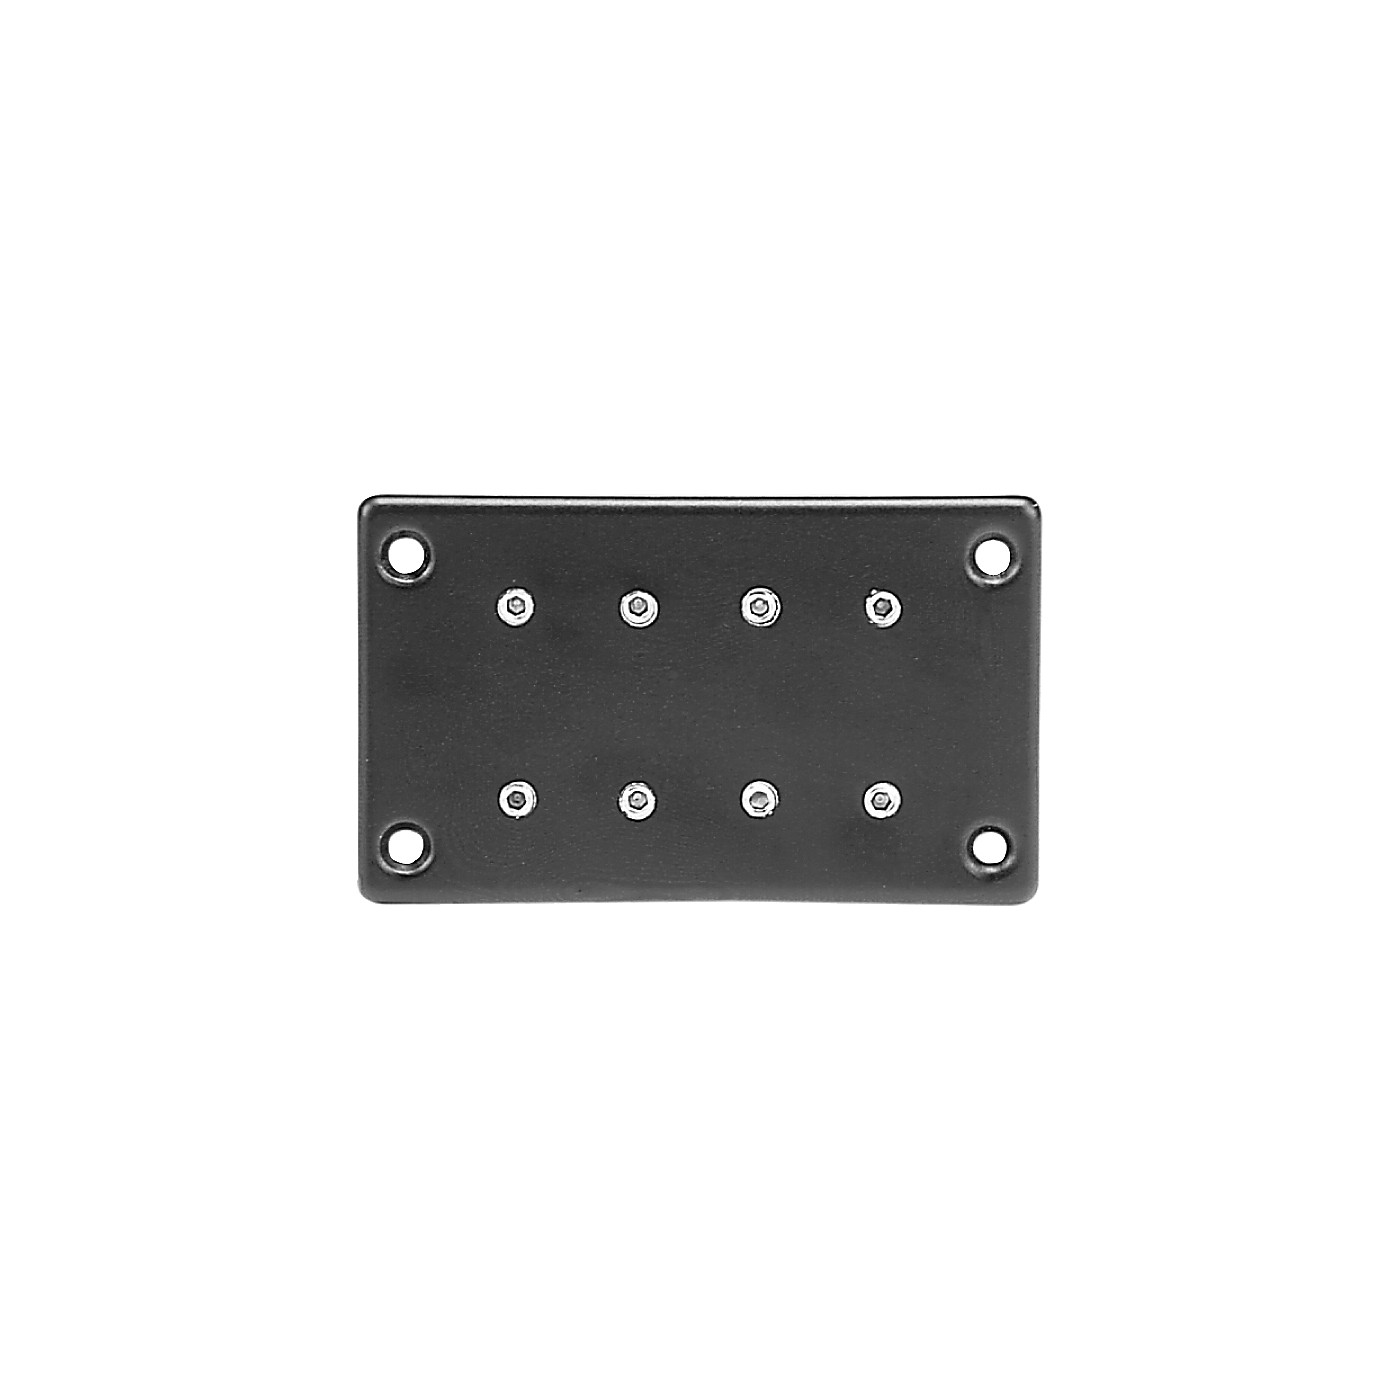 DiMarzio DP120 Model One Bass Humbucker Pickup thumbnail